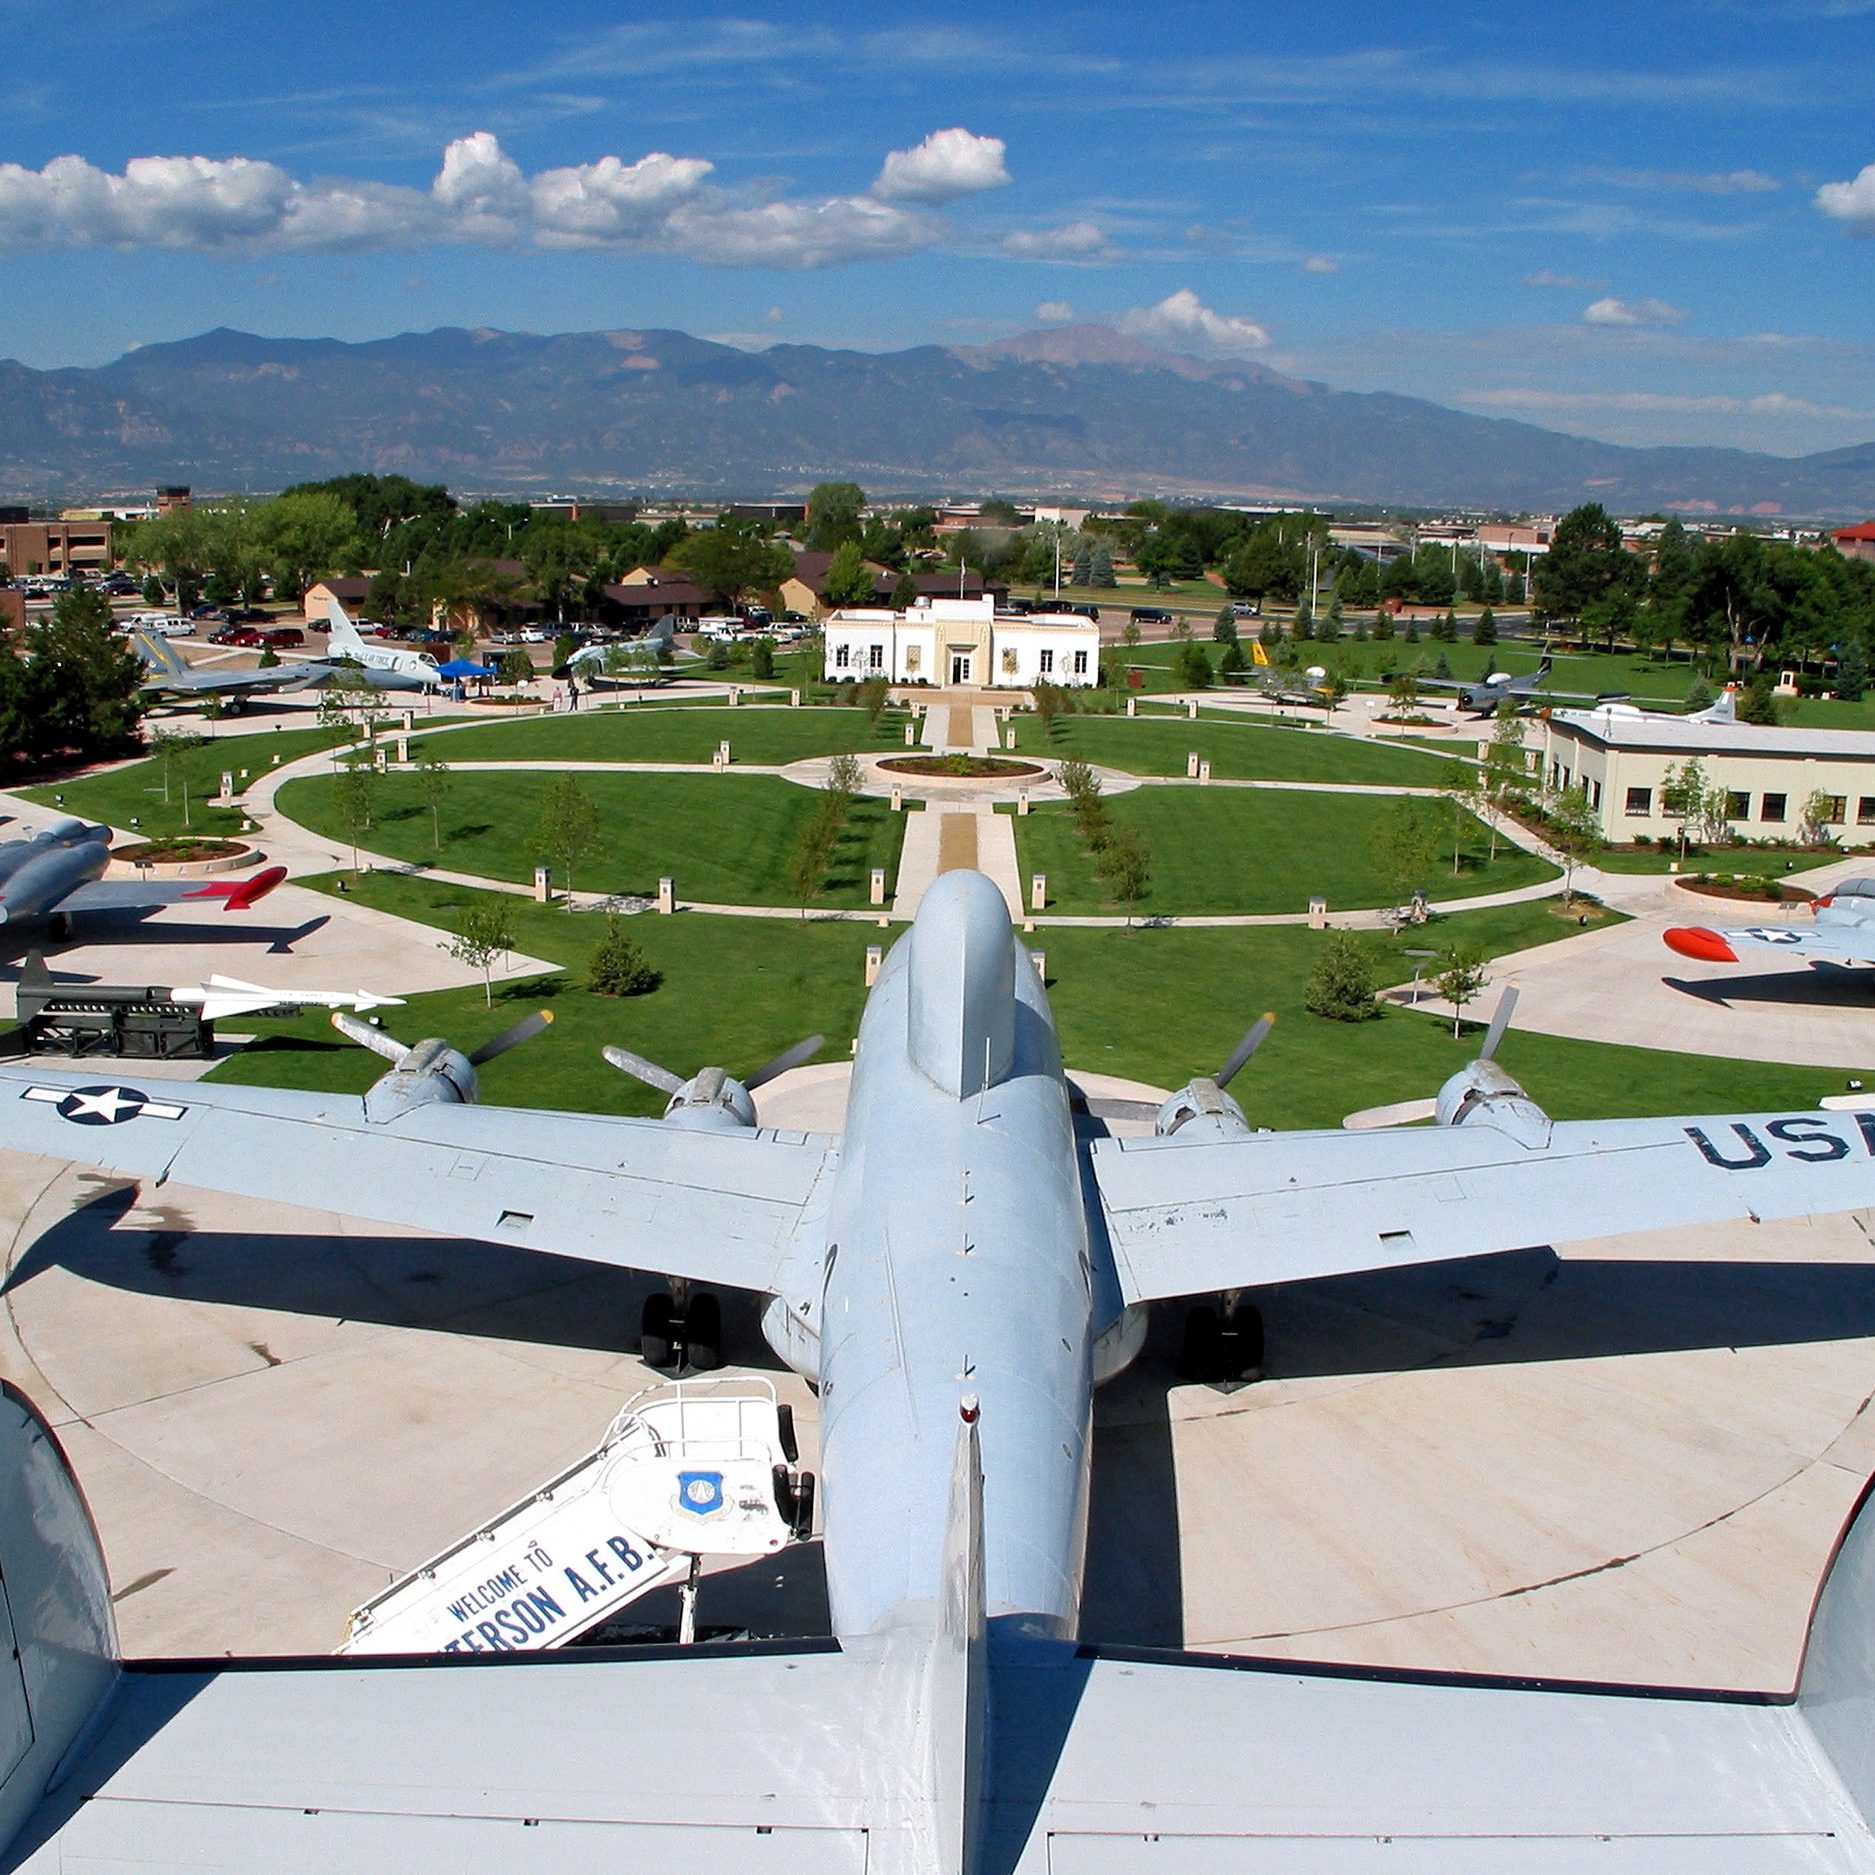 REAL PROPERTY SURVEY & PROPERTY VALIDATION - Peterson AFB, CO